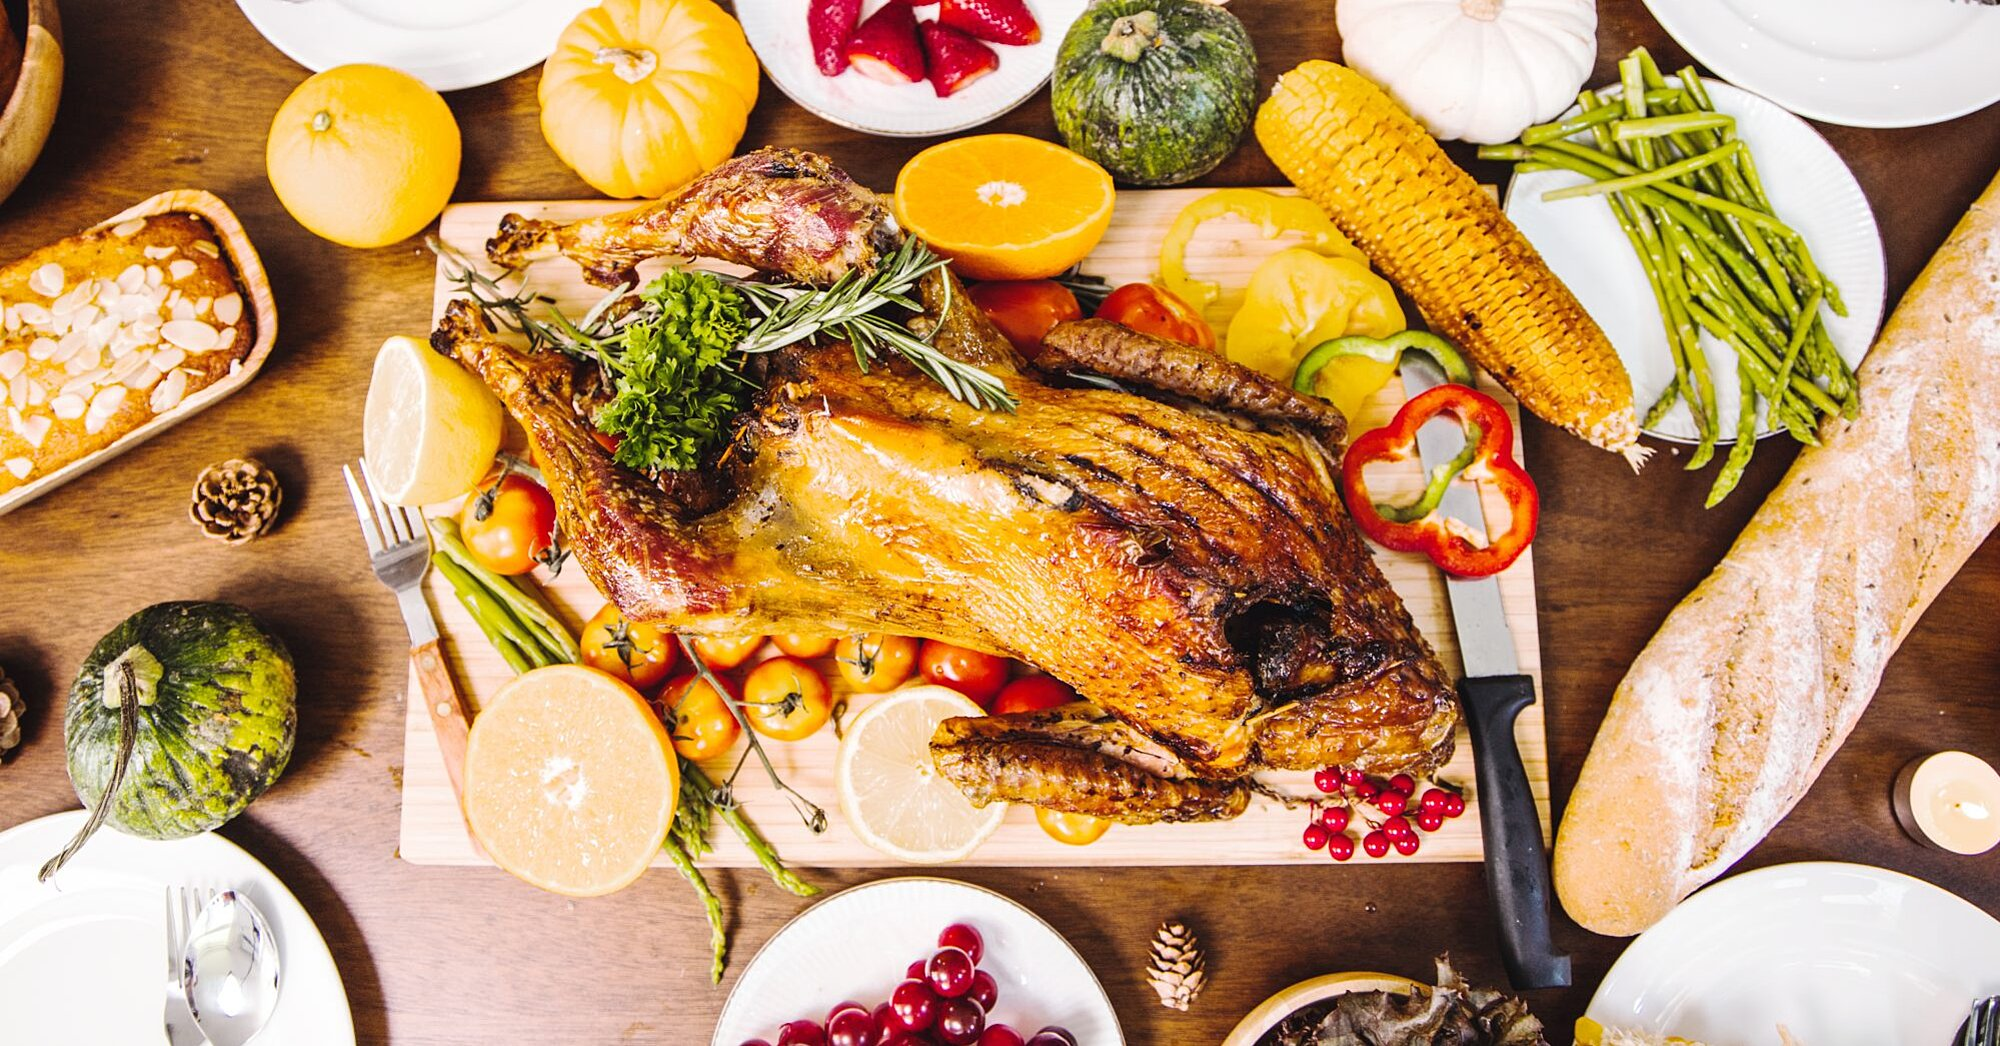 If You've Never Grilled Your Thanksgiving Turkey, This Is the Year to Try—Here, 10 Pro Tips for Perfecting It